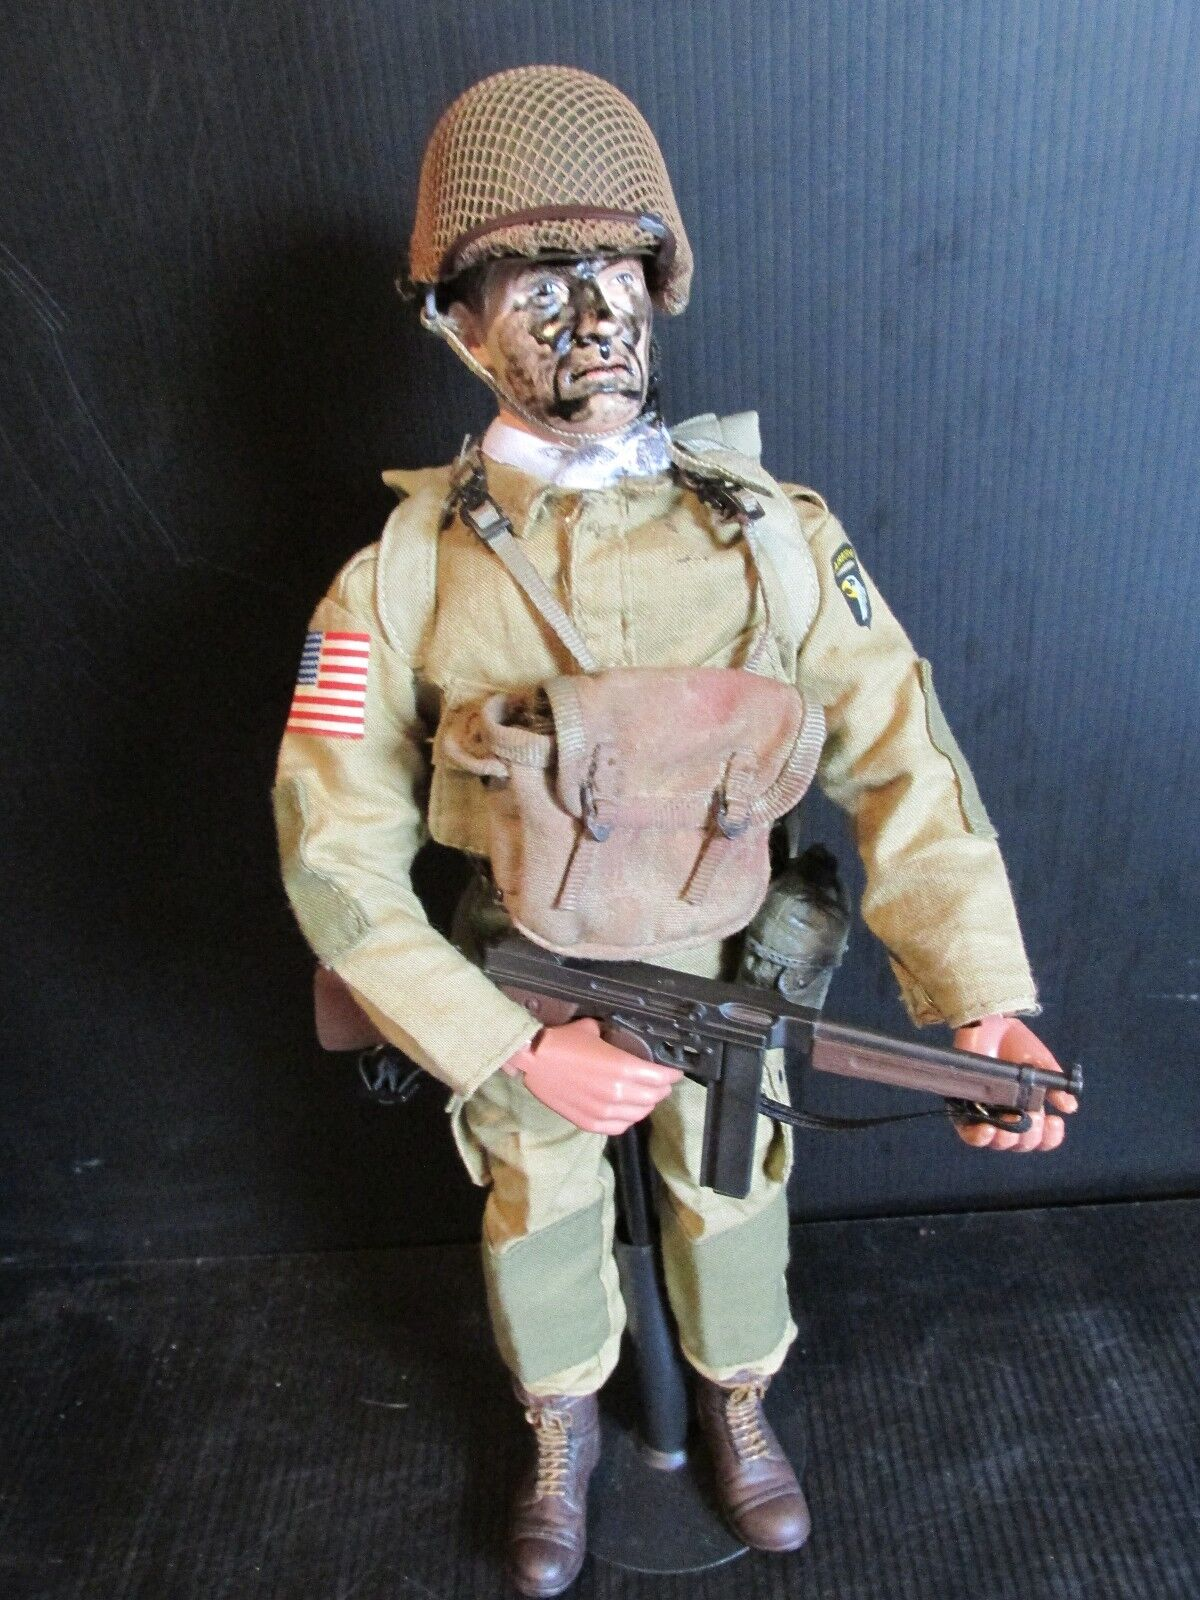 DRAGON DiD.CO 1 6TH scale figure WW 11 US 101ST AIRBORNE 506